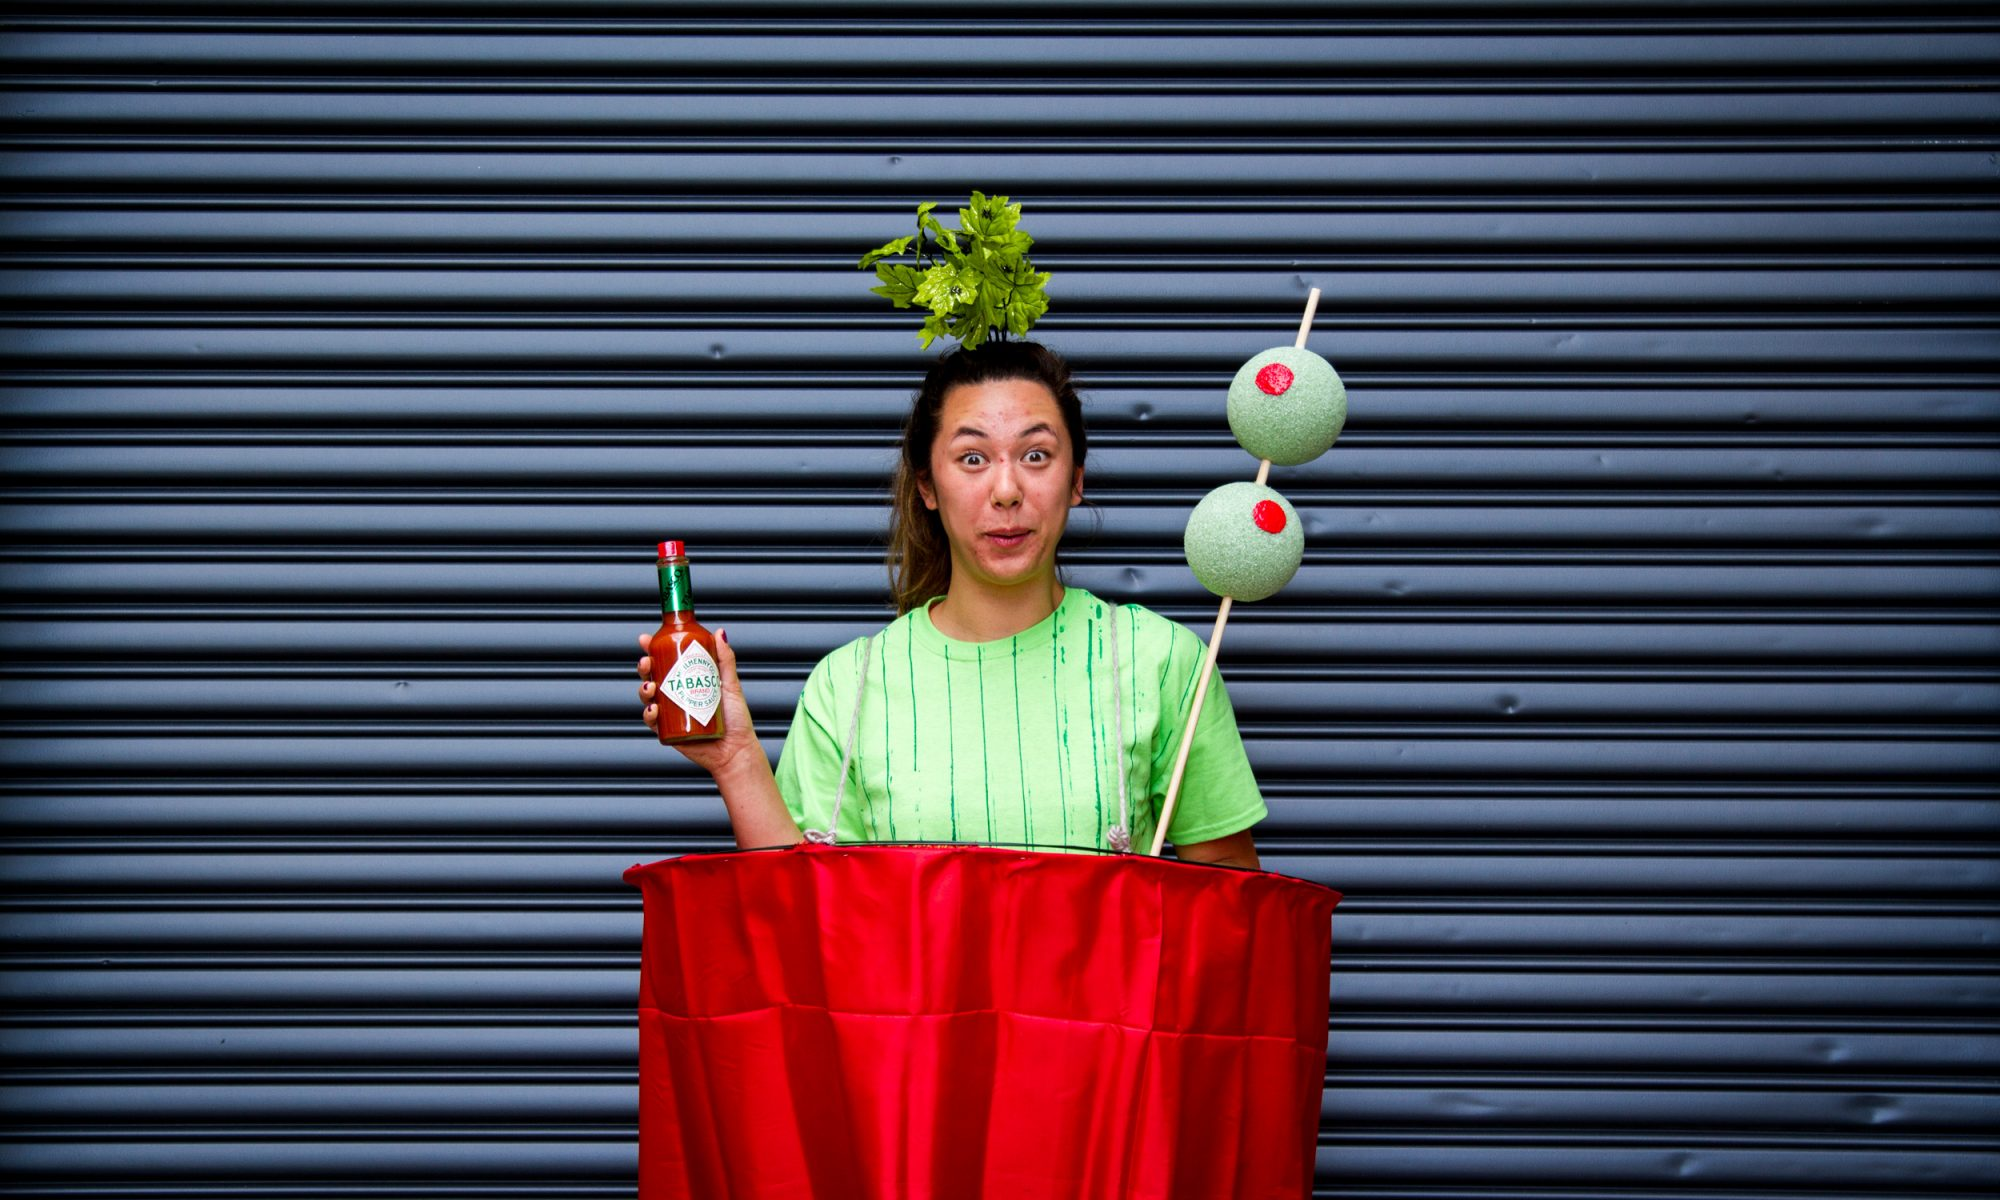 This Bloody Mary DIY Halloween Costume Is Spicy, Not Scary